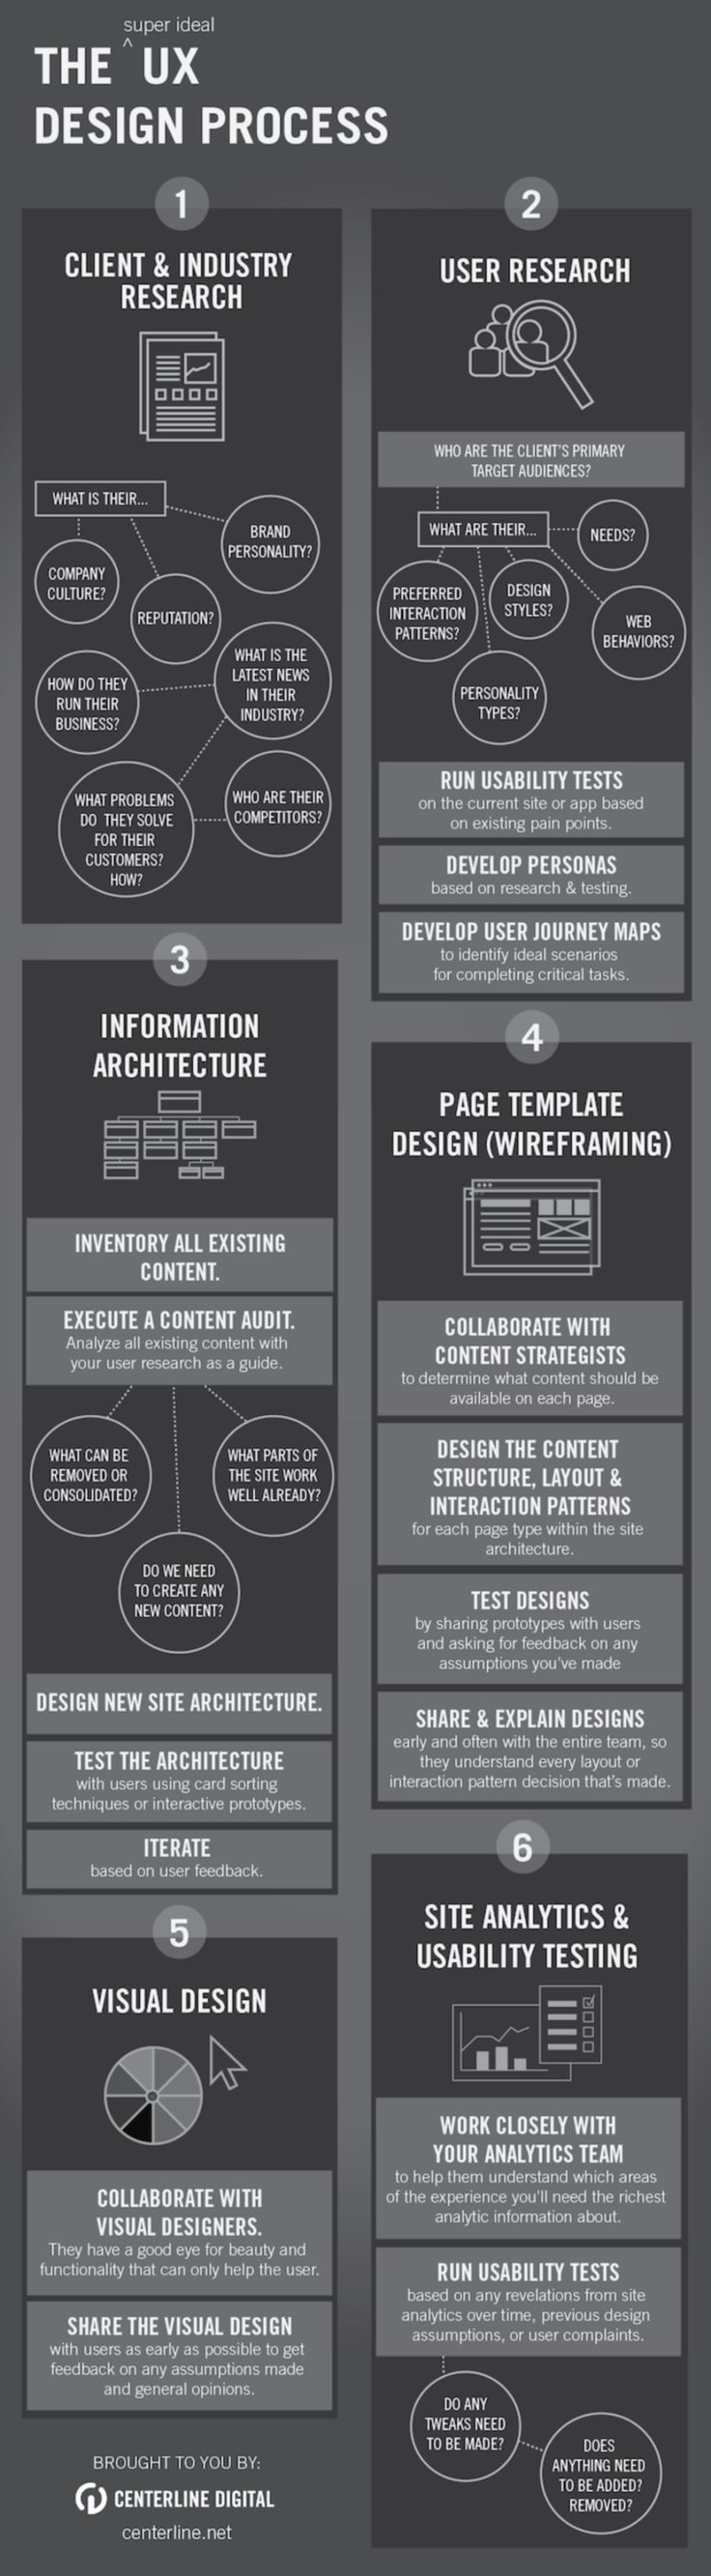 Whitepaper IT provides best UI/UX design services globally for Software Product Application user interface design and user experience design, Web Communication Strategy & Mobile application.. If you like UX, design, or design thinking, check out theuxblog.com